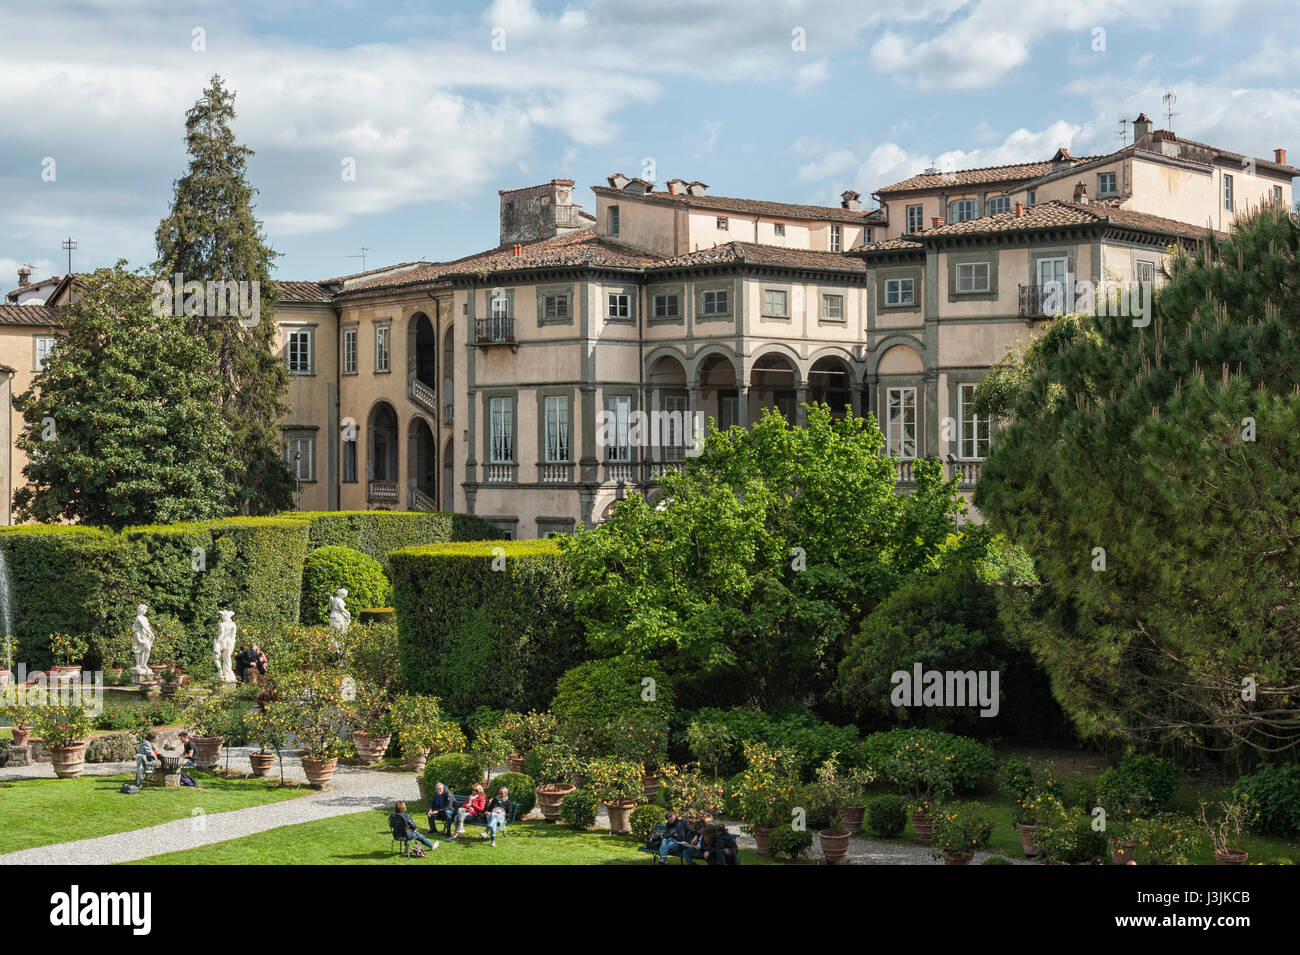 Garden of Palazzo Pfanner, Lucca, Tuscany, Italy - Stock Image